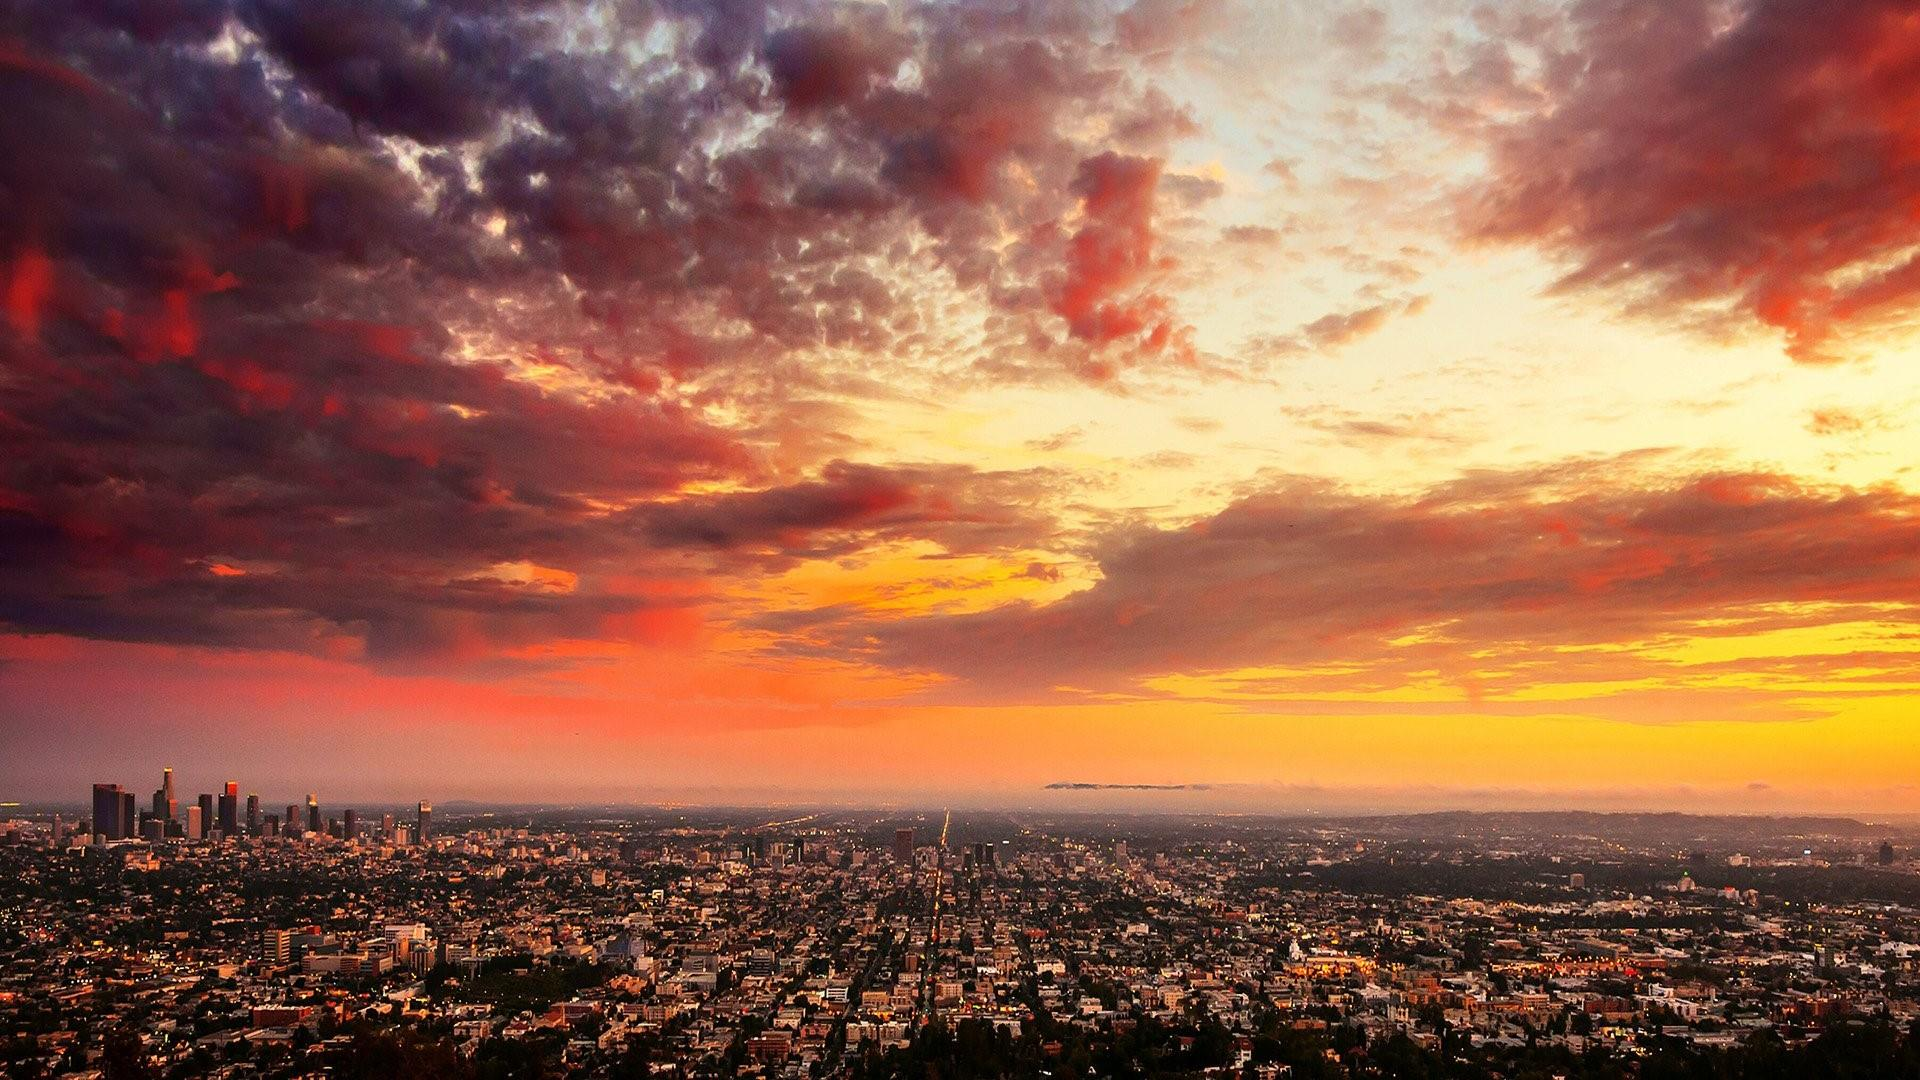 Red sky at morning in Los Angeles wallpaper